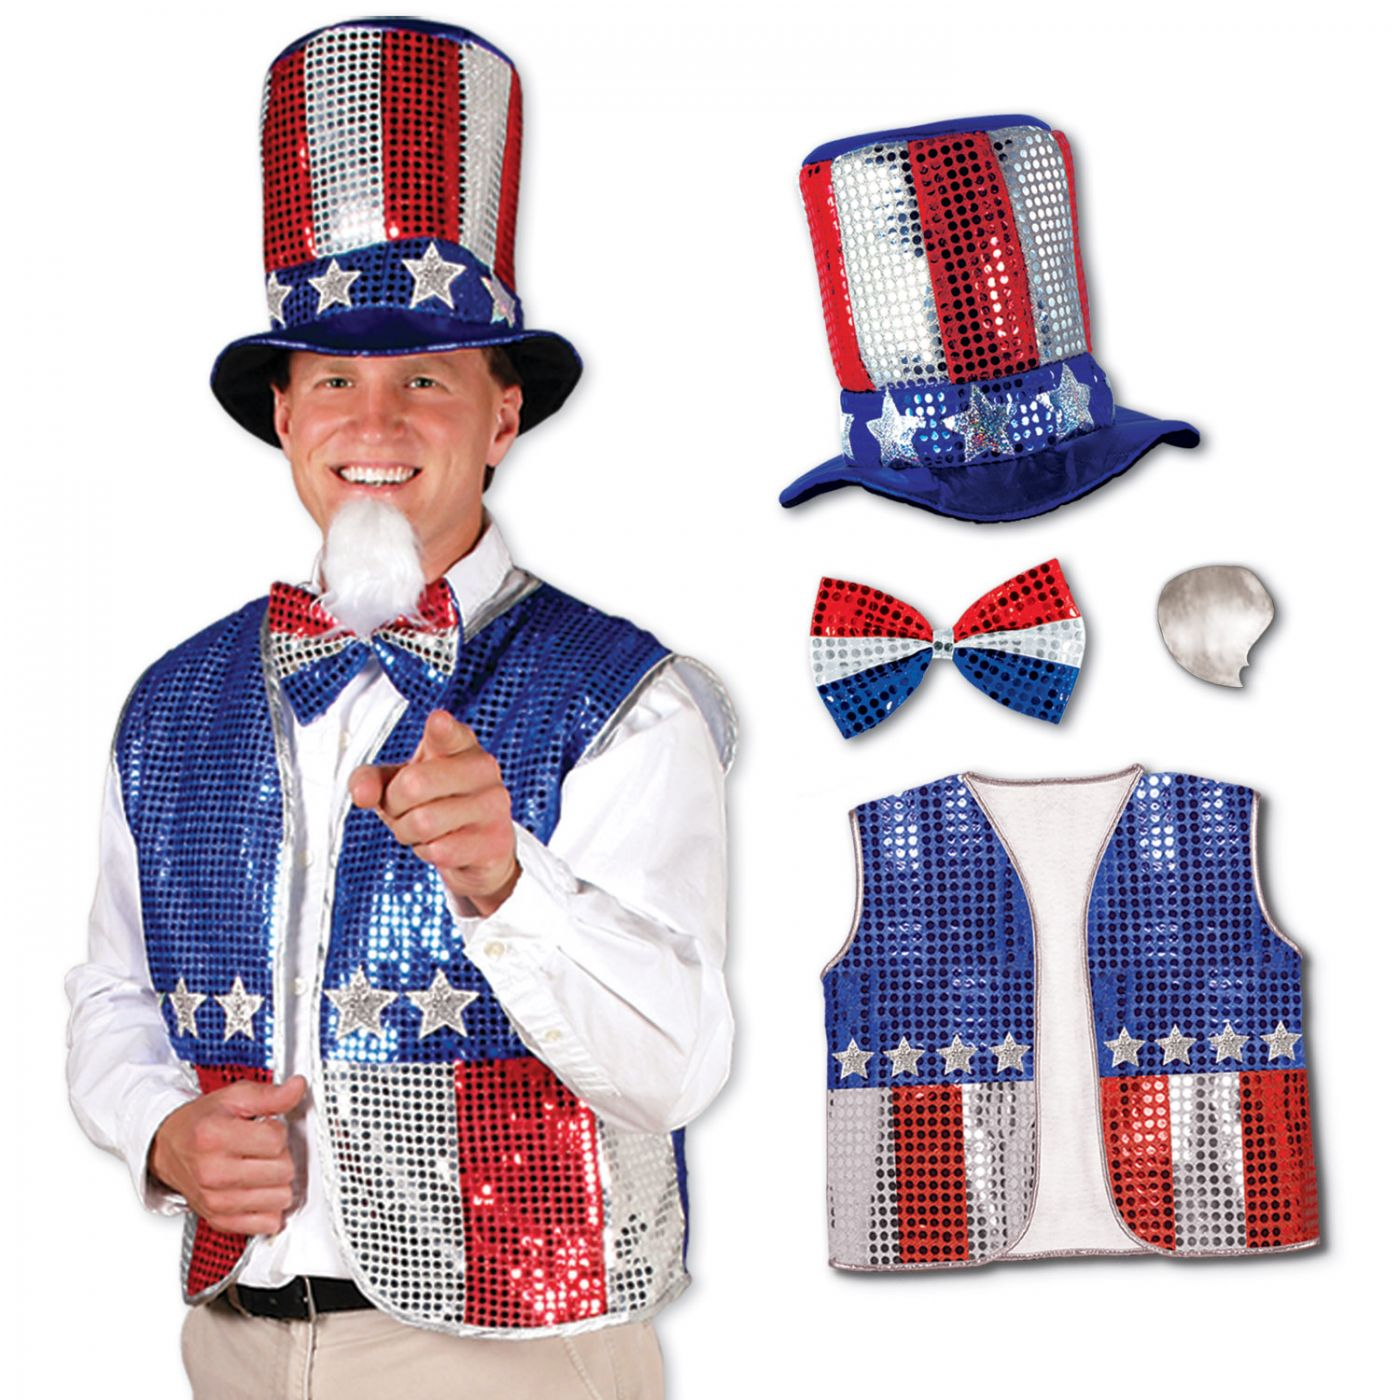 Sequined Uncle Sam Set (1) image